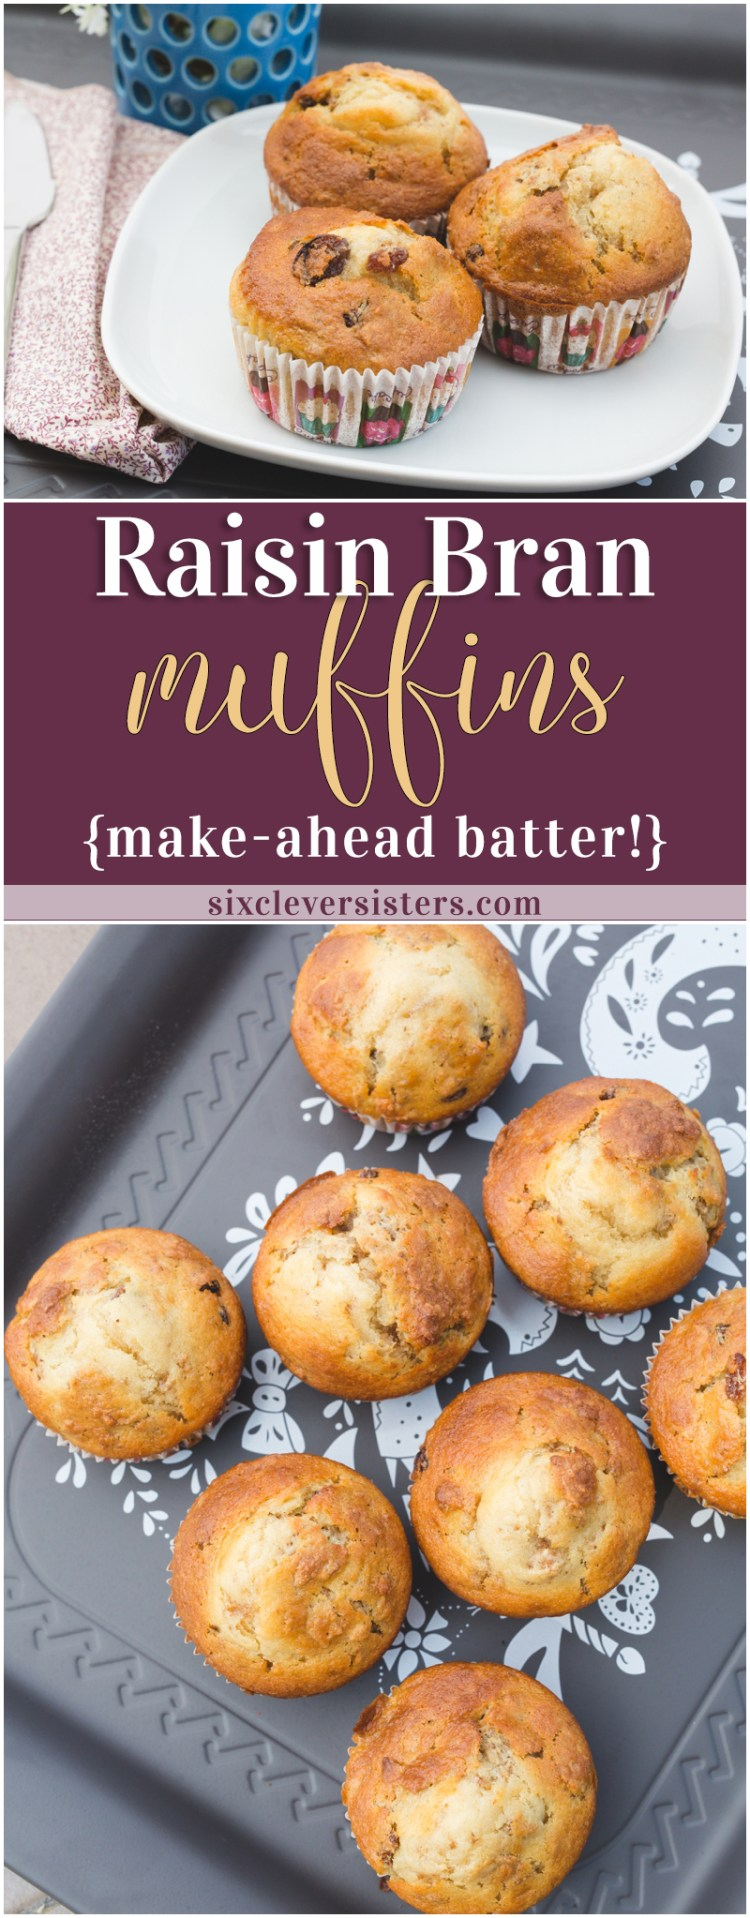 Raisin Bran Muffins   Raisin Bran   Quick Muffins   Breakfast Muffins   Make-Ahead   These muffins are great because it only takes 5 minutes to mix up a big recipe, and you can store the batter in your fridge for up to a month! Recipe on the Six Clever Sisters blog!